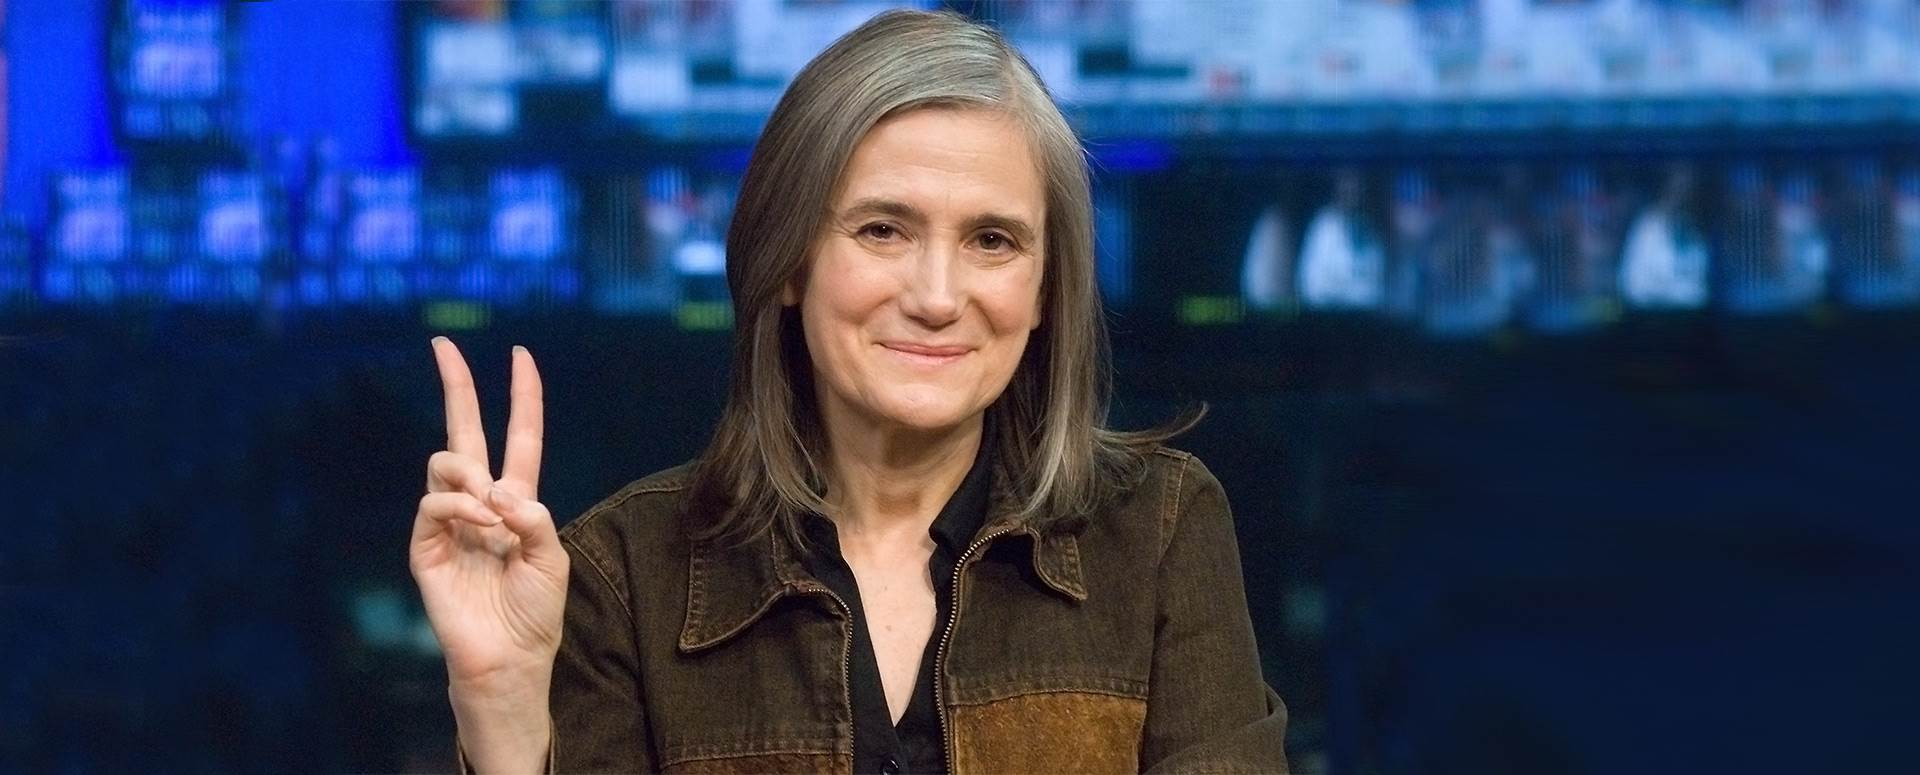 Book Amy Goodman for Speaking, Events and Appearances | APB Speakers